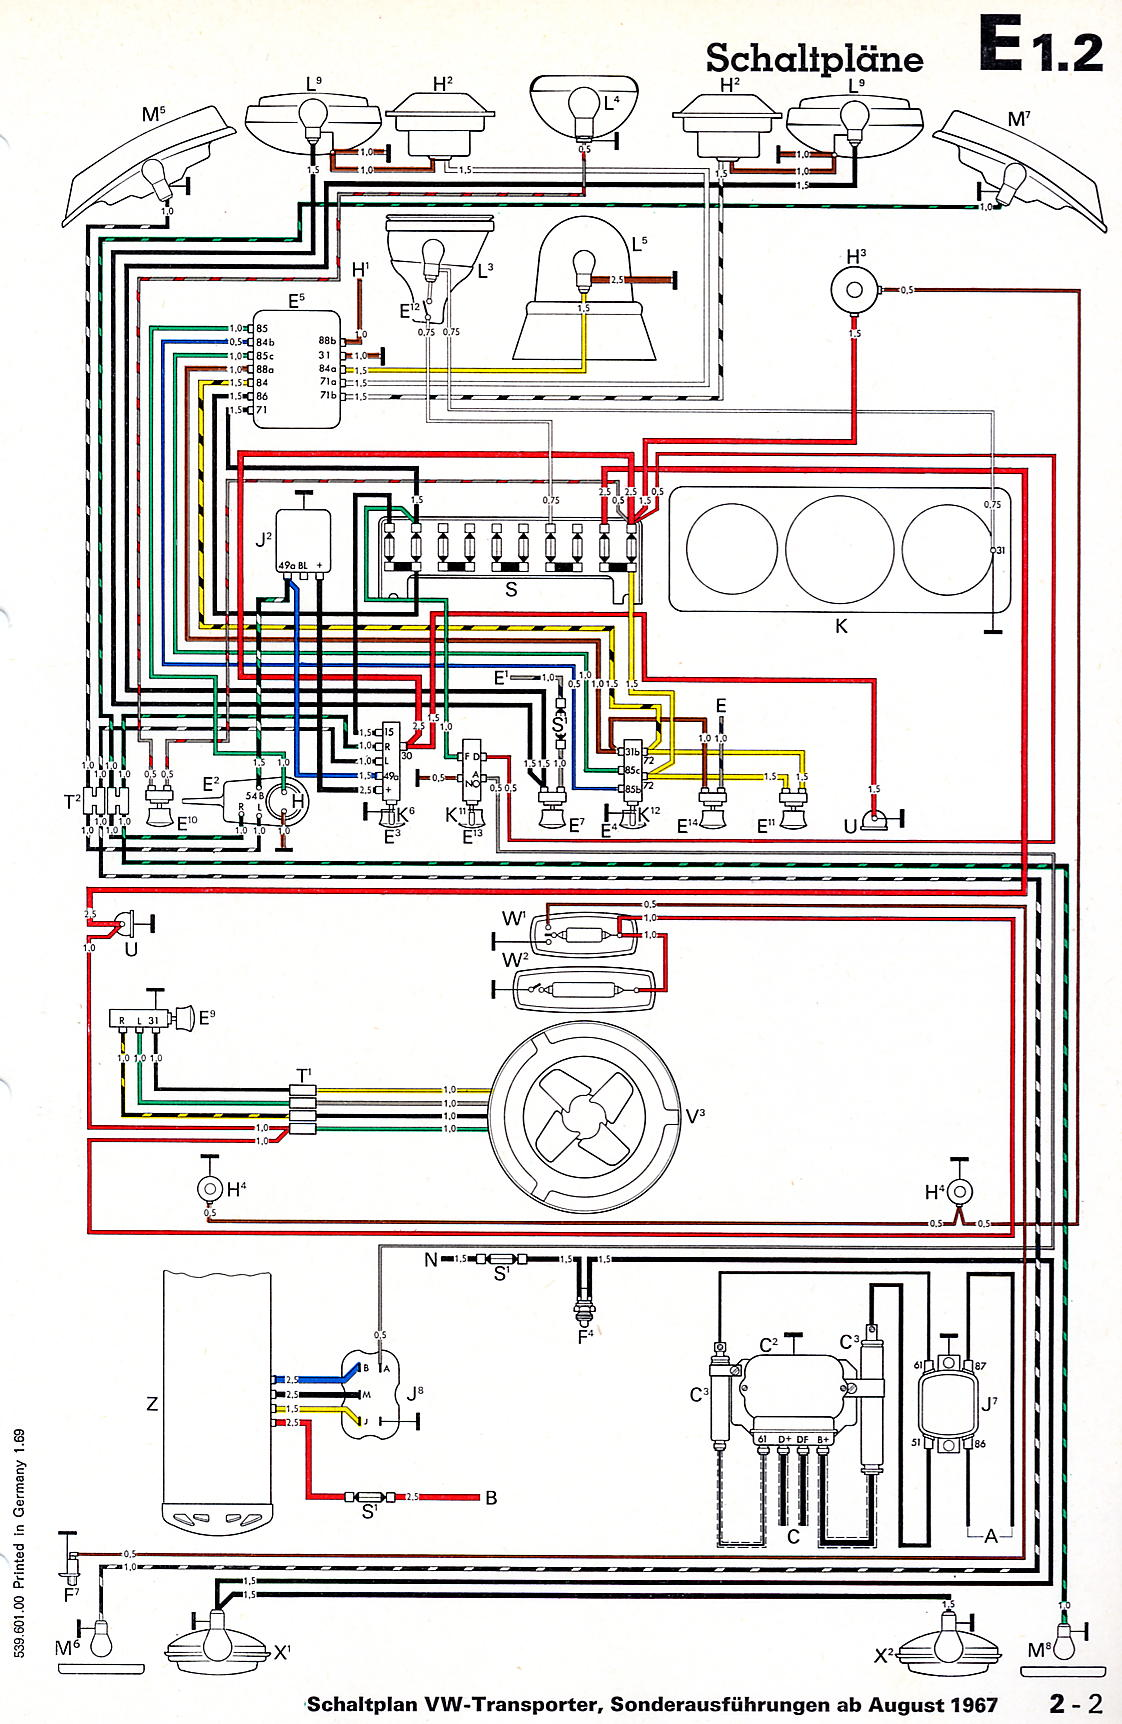 Mid Bus Wiring Diagrams Layout Vw Fuse Diagram Thesamba Com Bay Window View Topic 69 Electrical Hacks By Rh School